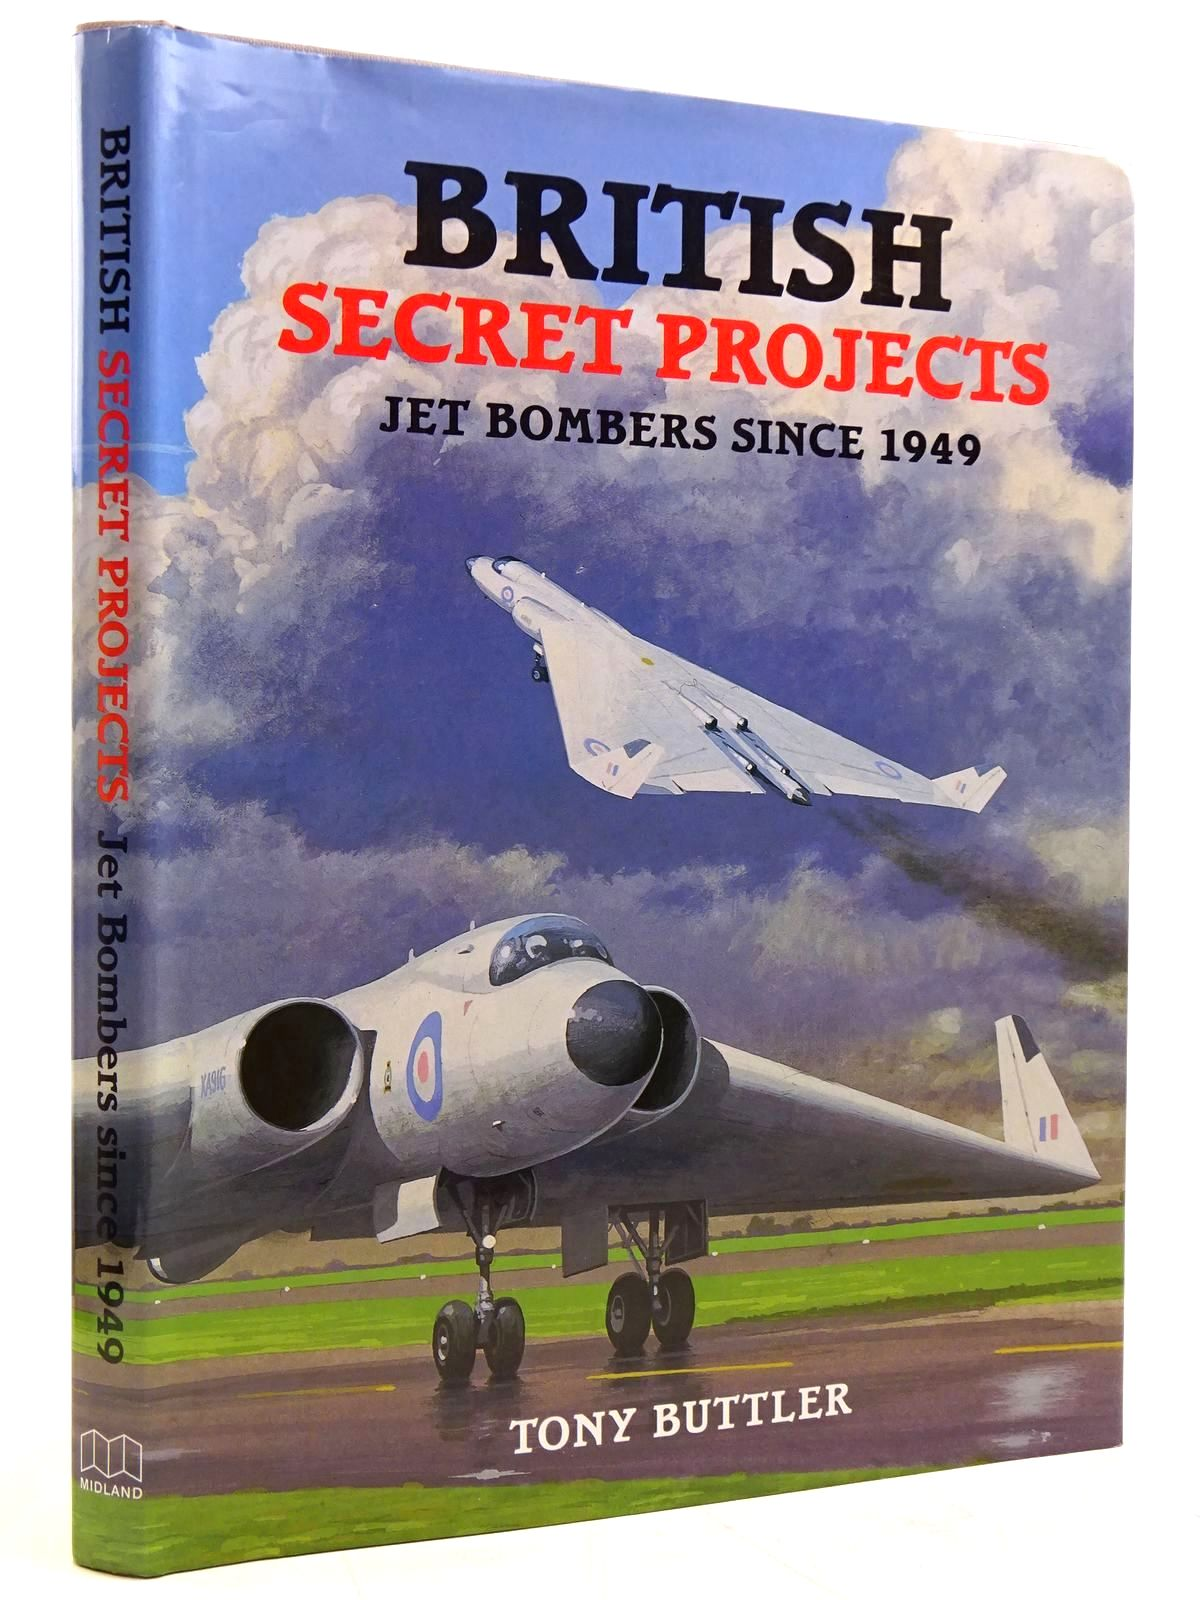 Photo of BRITISH SECRET PROJECTS JET BOMBER SINCE 1949 written by Buttler, Tony published by Midland Publishing (STOCK CODE: 2131438)  for sale by Stella & Rose's Books